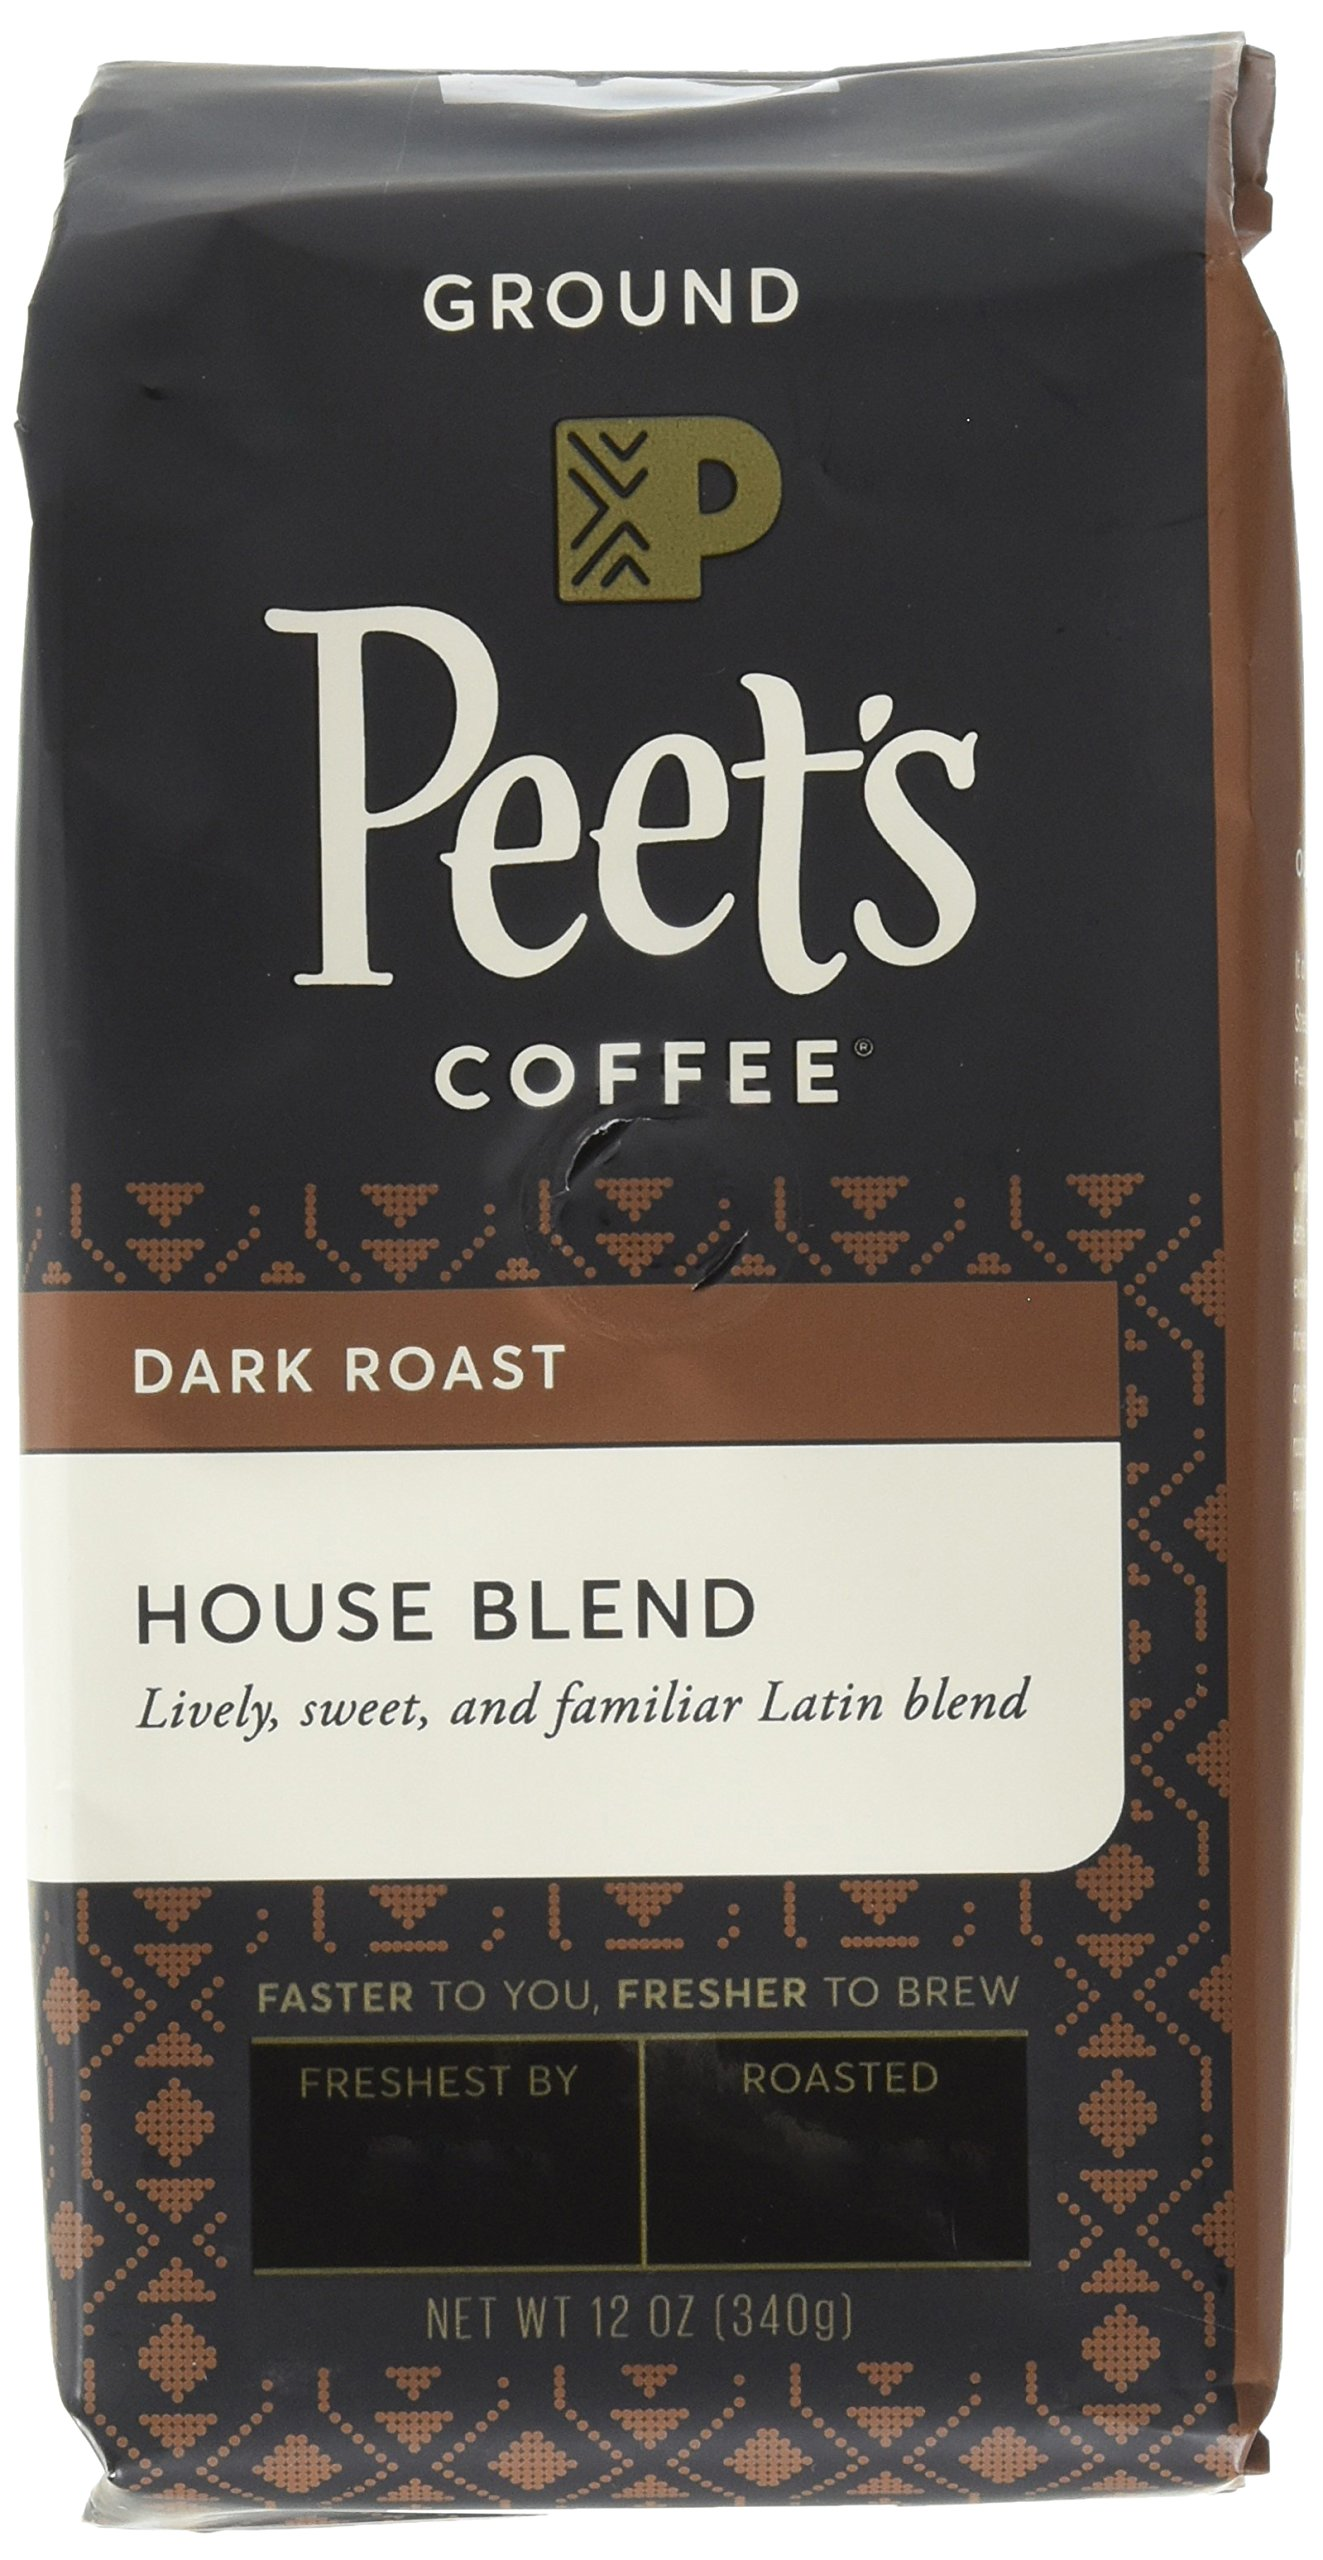 Peet's Coffee House Blend Ground, Dark Roast, 12oz (Pack of 2) bag (Packaging may vary)